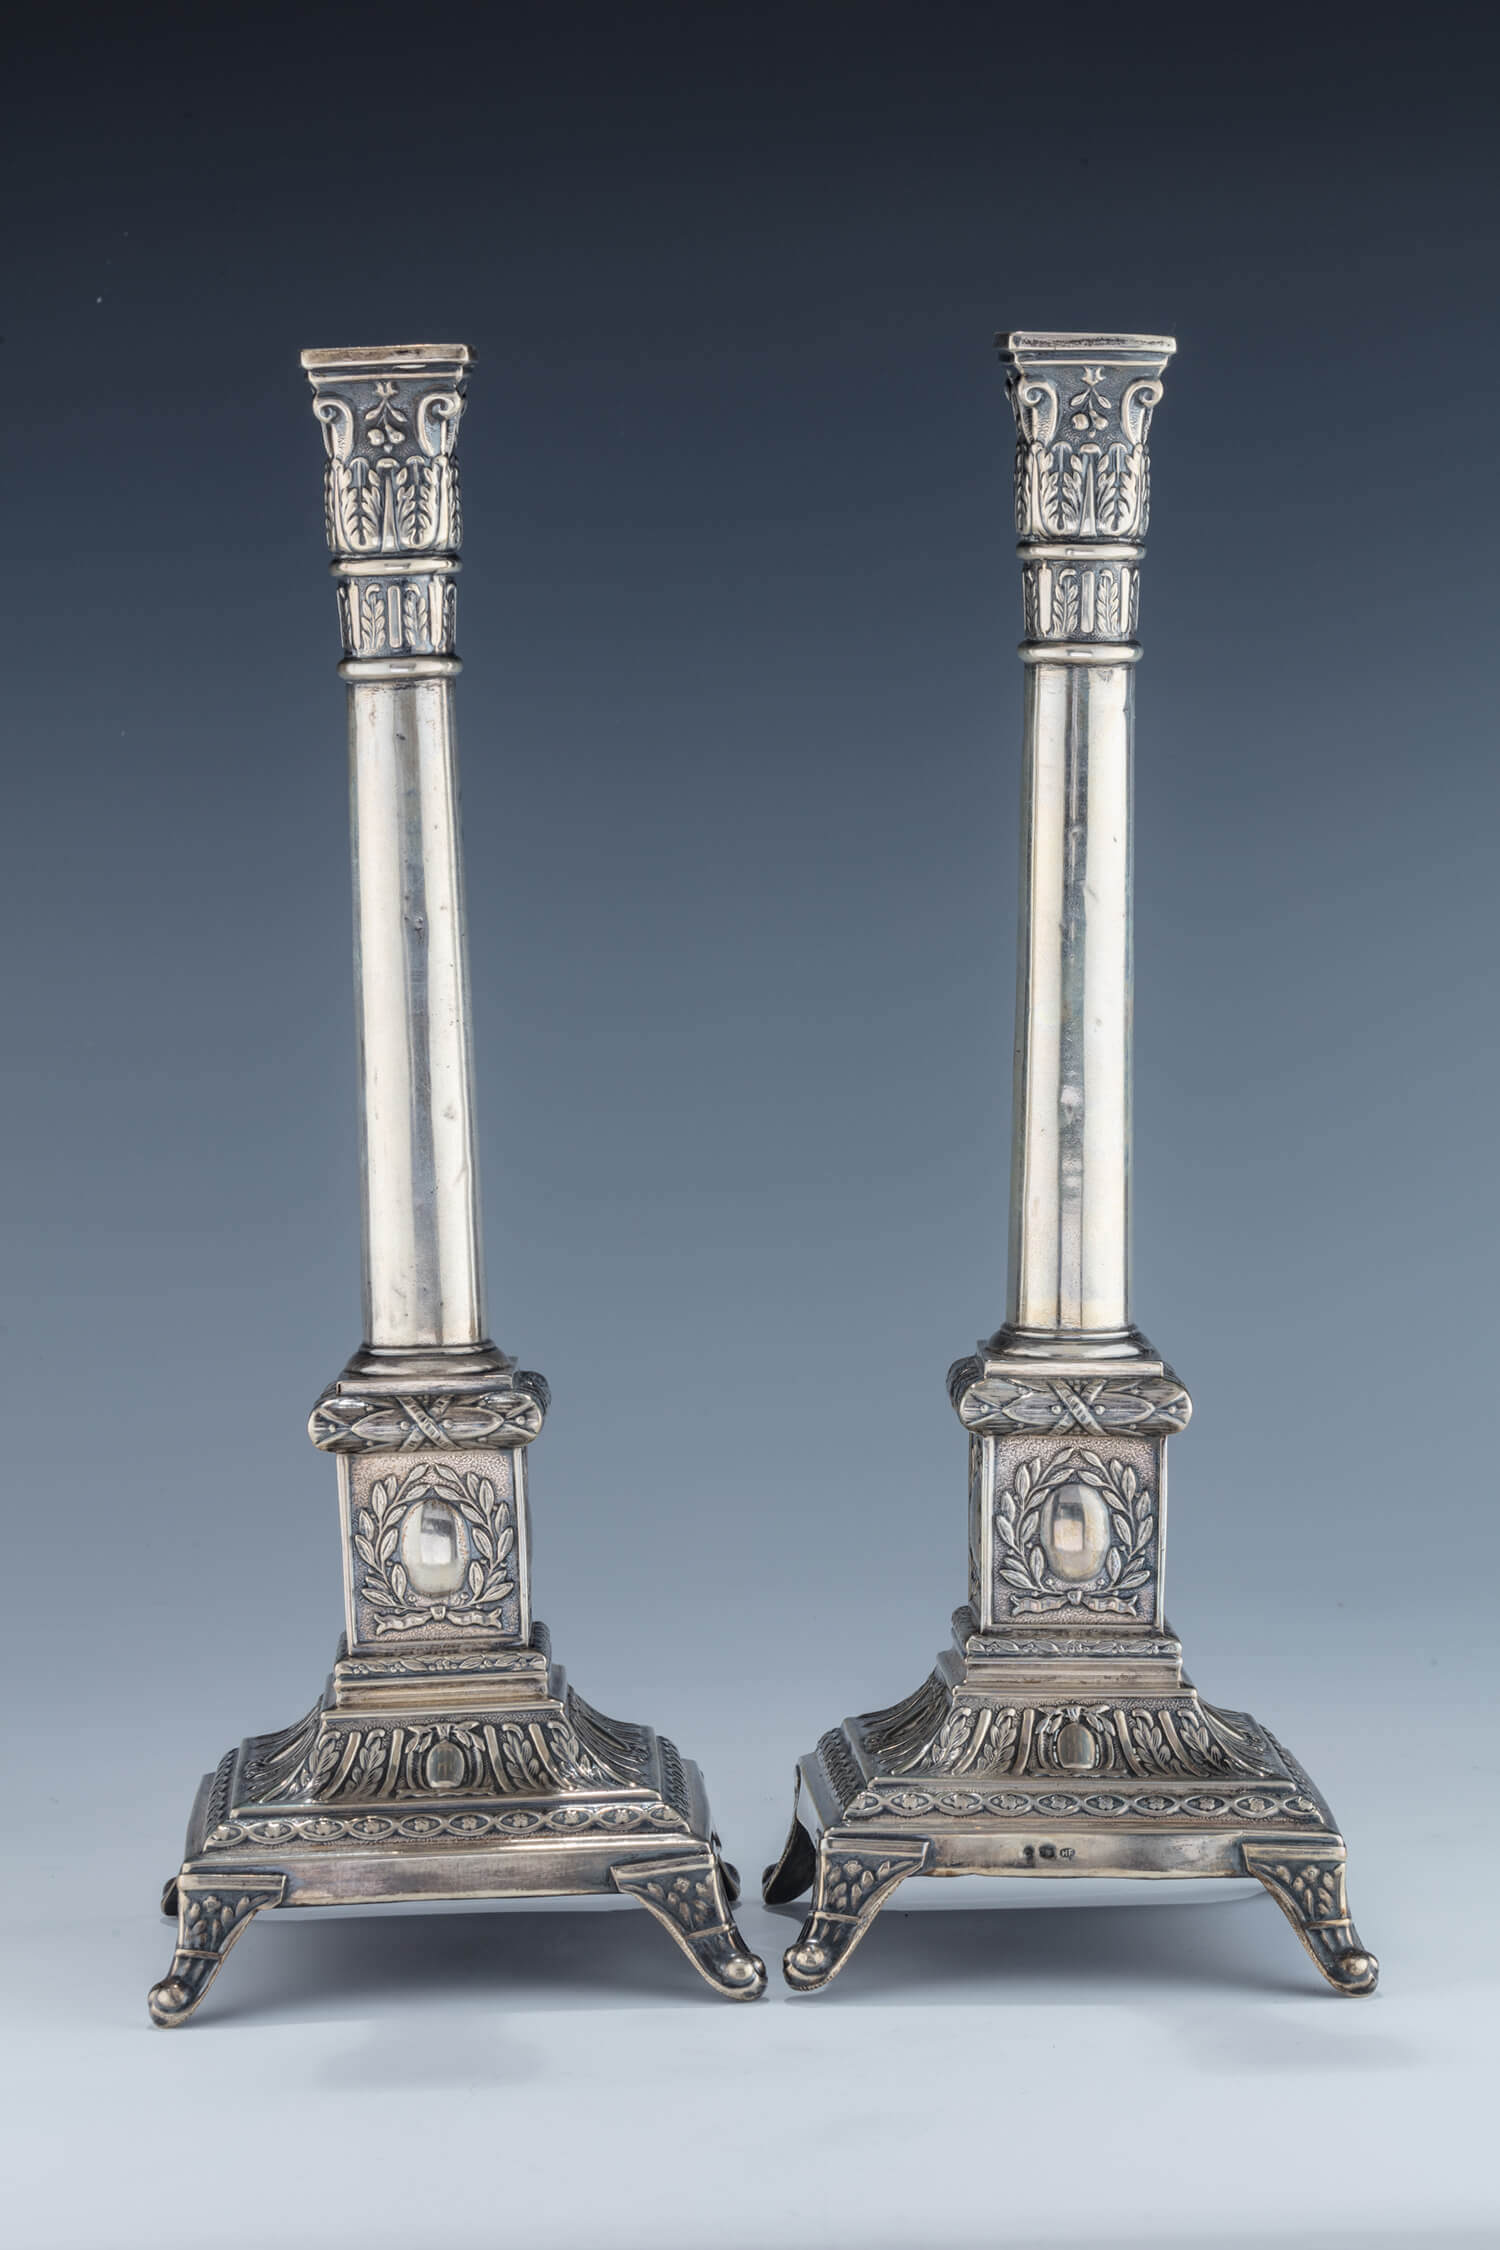 033. A PAIR OF SILVER CANDLESTICKS